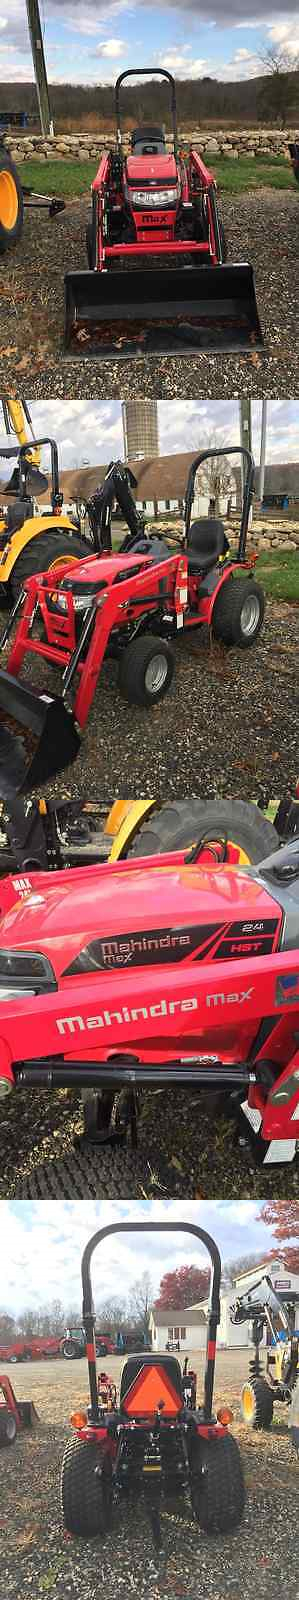 heavy equipment: Mahindra Max 24 Hst 4Wd Tractor With Bucket Loader BUY IT NOW ONLY: $14000.0